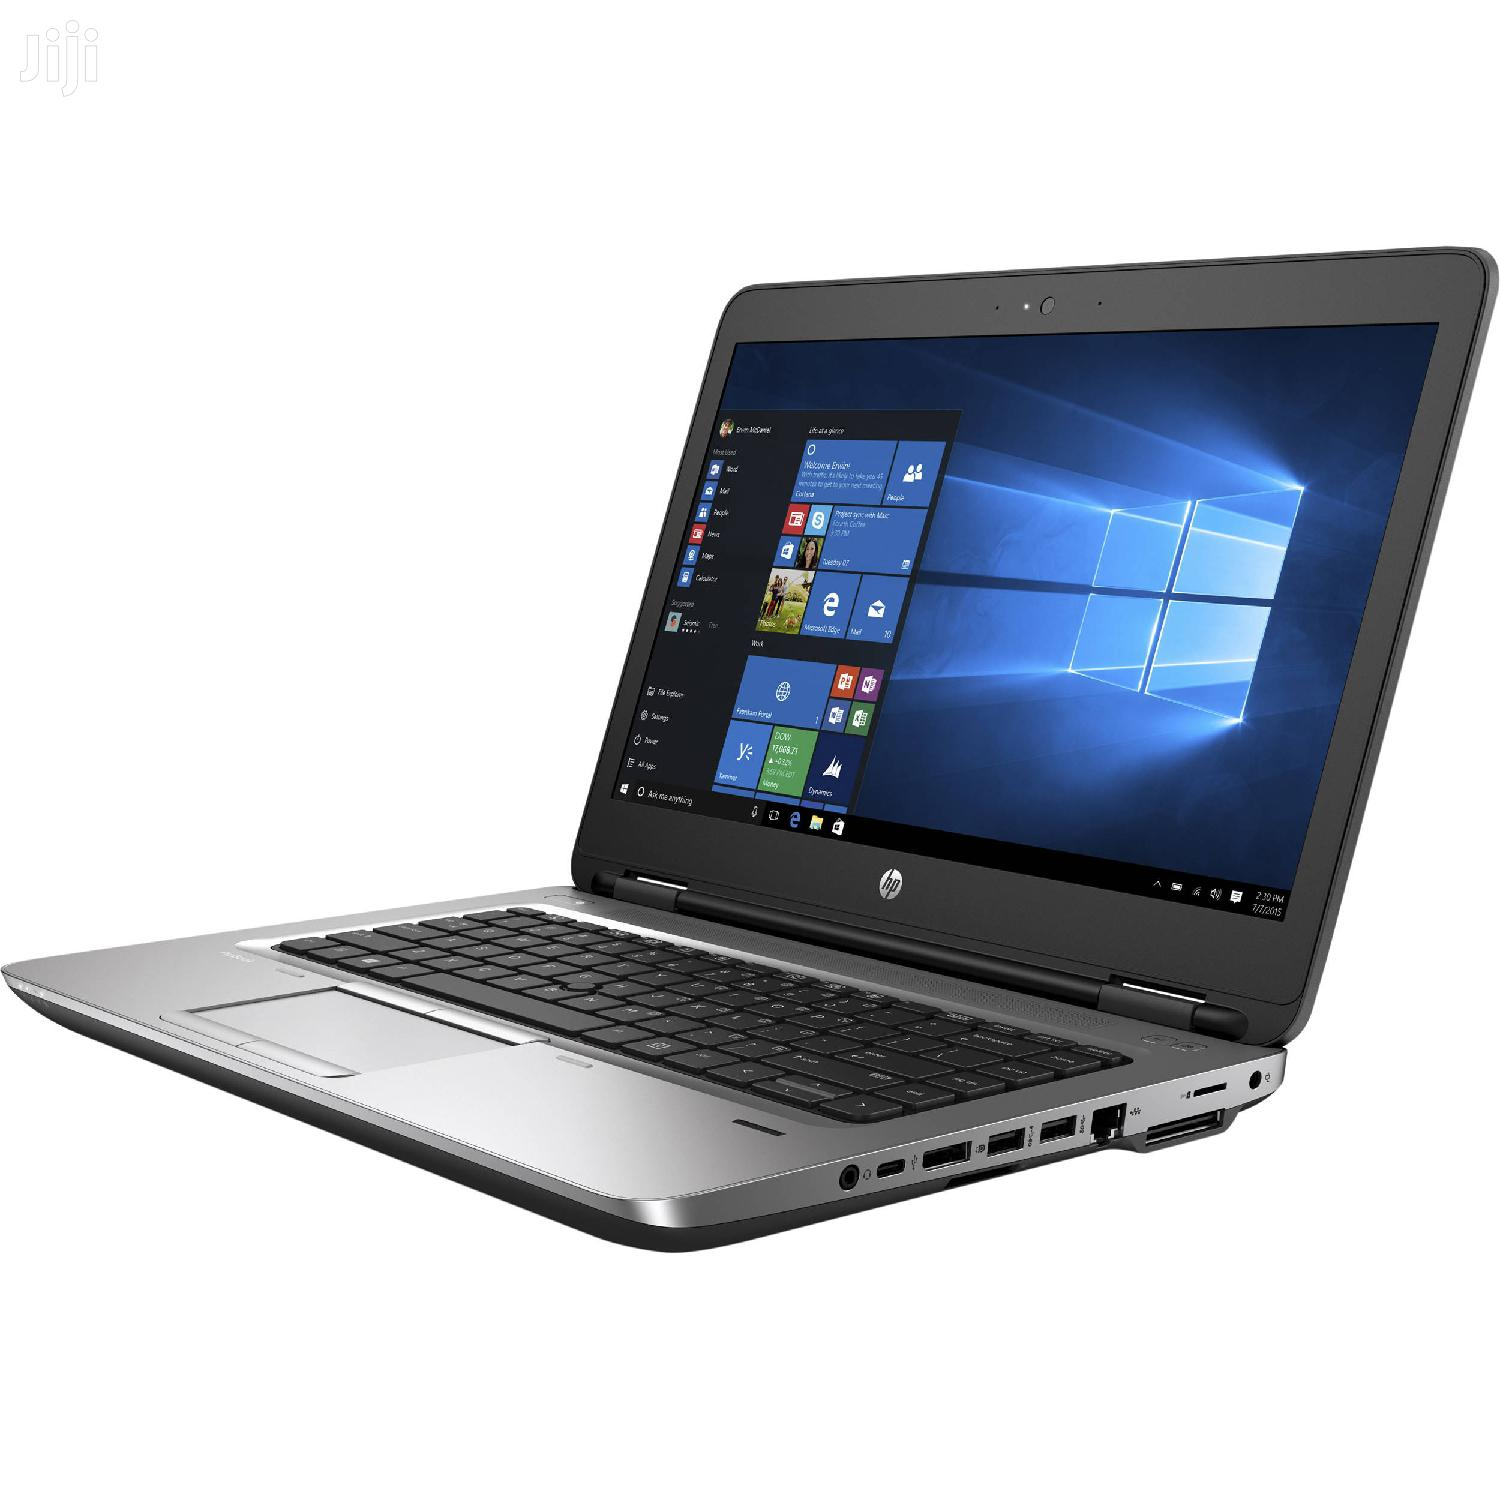 Archive: Laptop HP ProBook 645 G1 8GB AMD A8 HDD 500GB